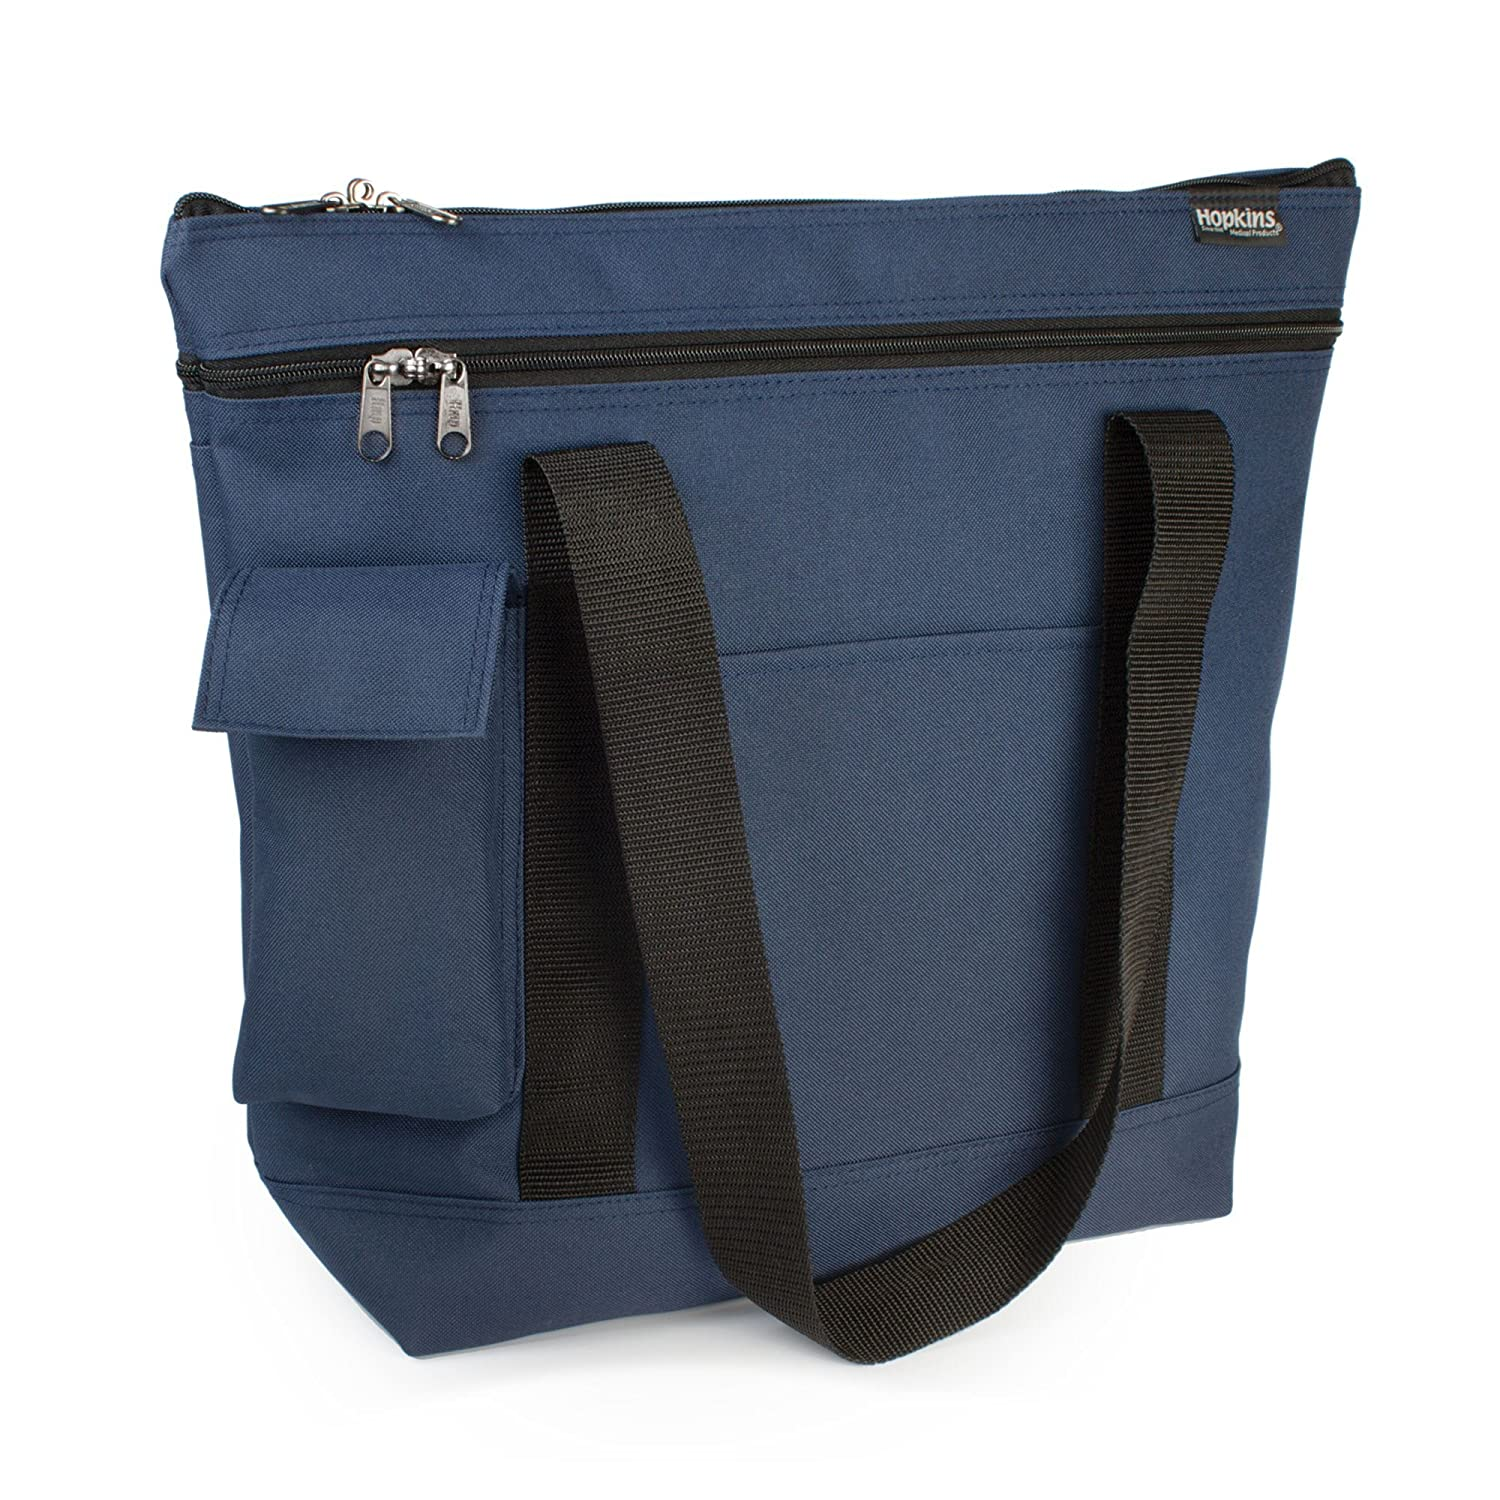 Hopkins 600 Clean/Dirty Tote for Nurses and Home Health Professionals